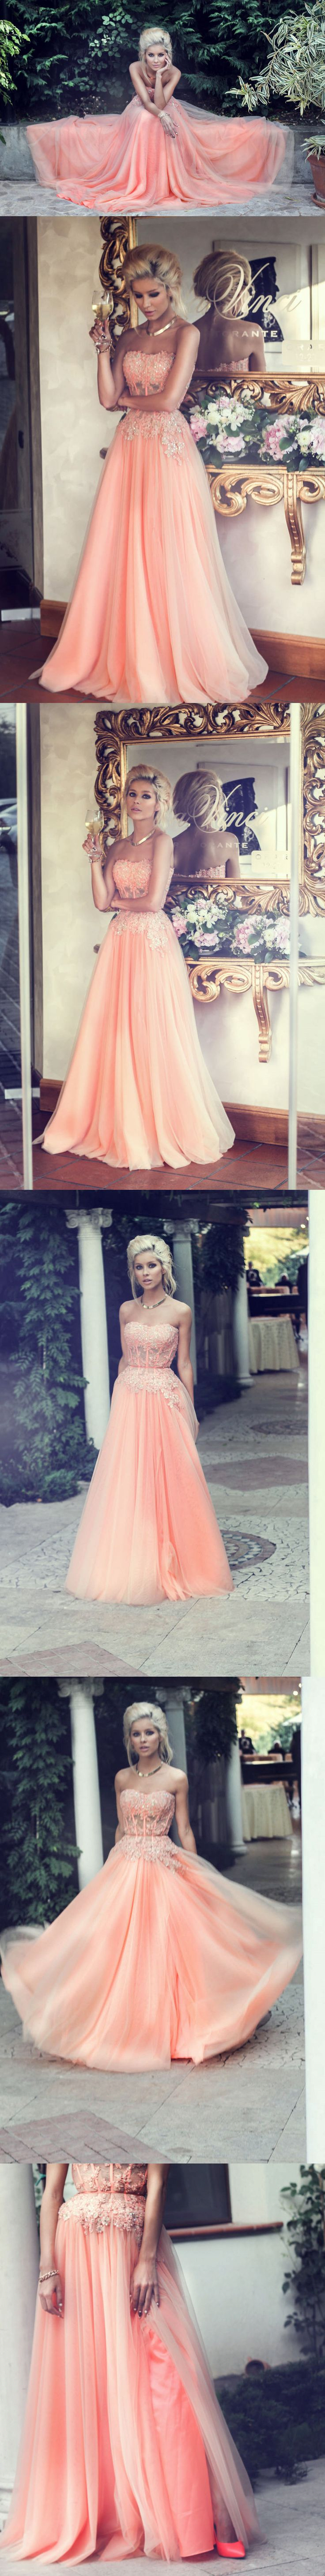 long prom dress,popular prom dress by yesdress from http://yesdress.storenvy.com/collections/981123-long-prom-dresses/products/12024737-long-prom-dress-popular-prom-dress-sweet-heart-prom-dress-dresses-for-prom-c